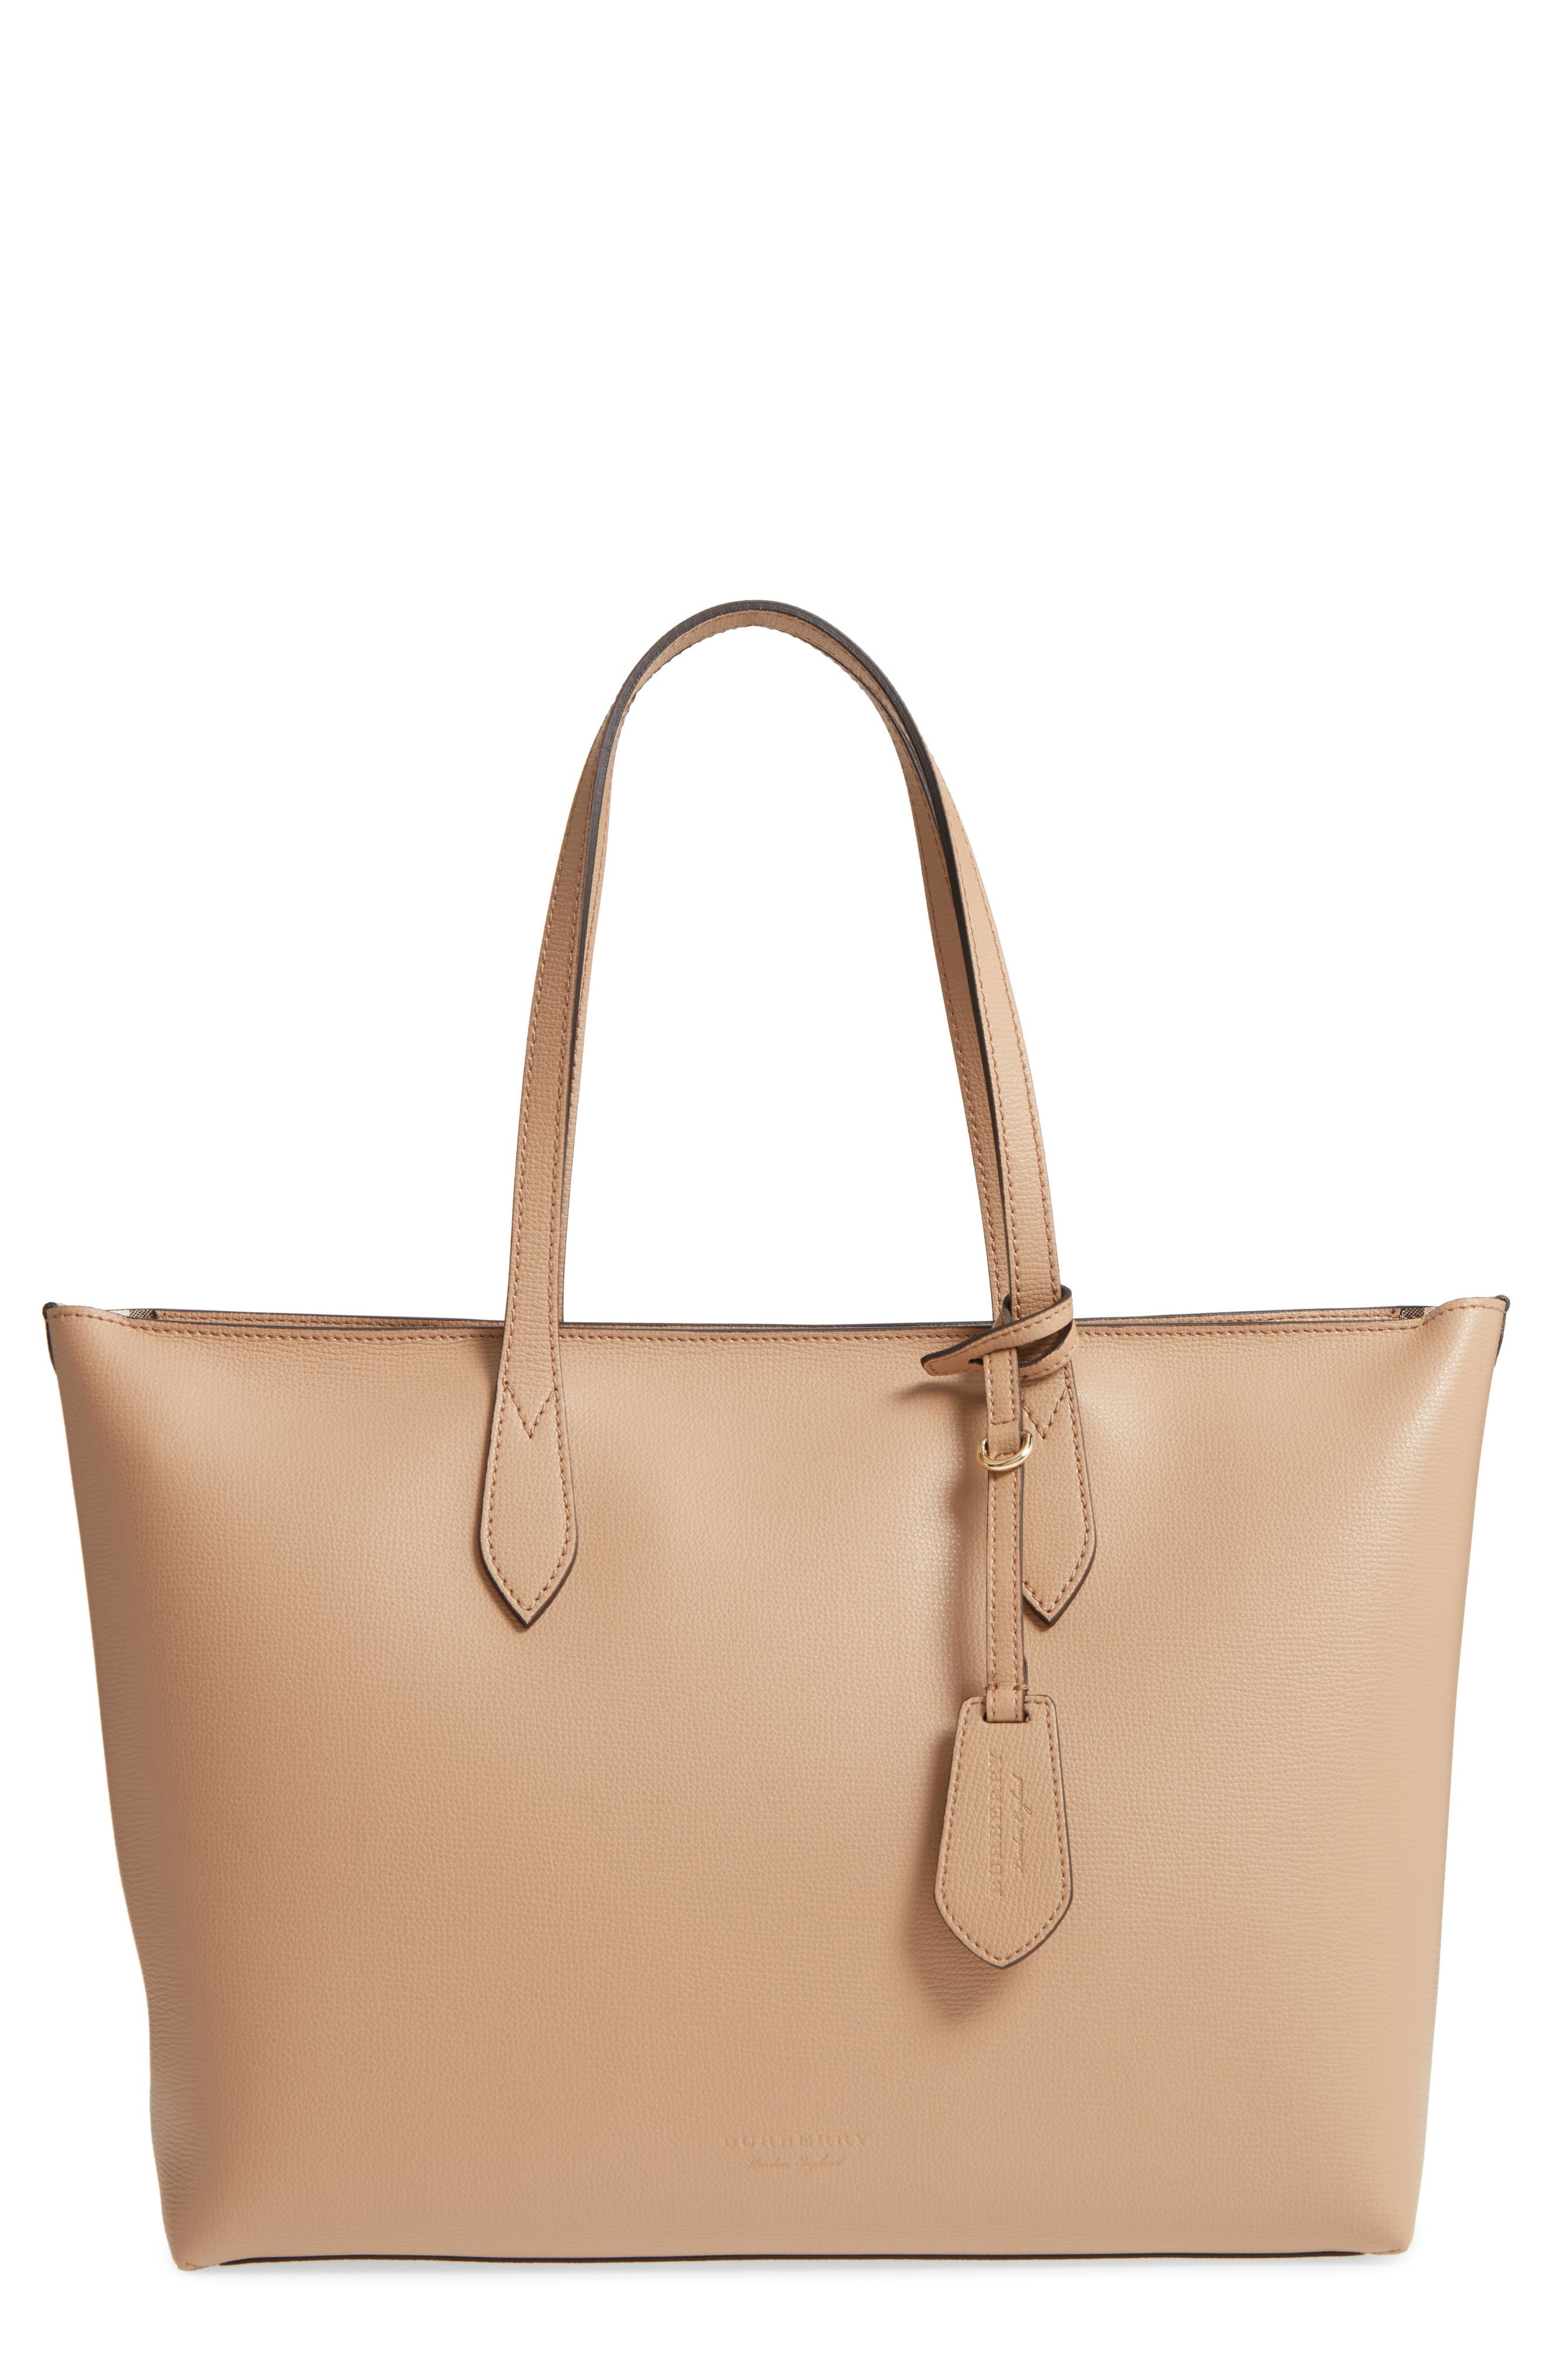 Main Image - Burberry Calfskin Leather Tote